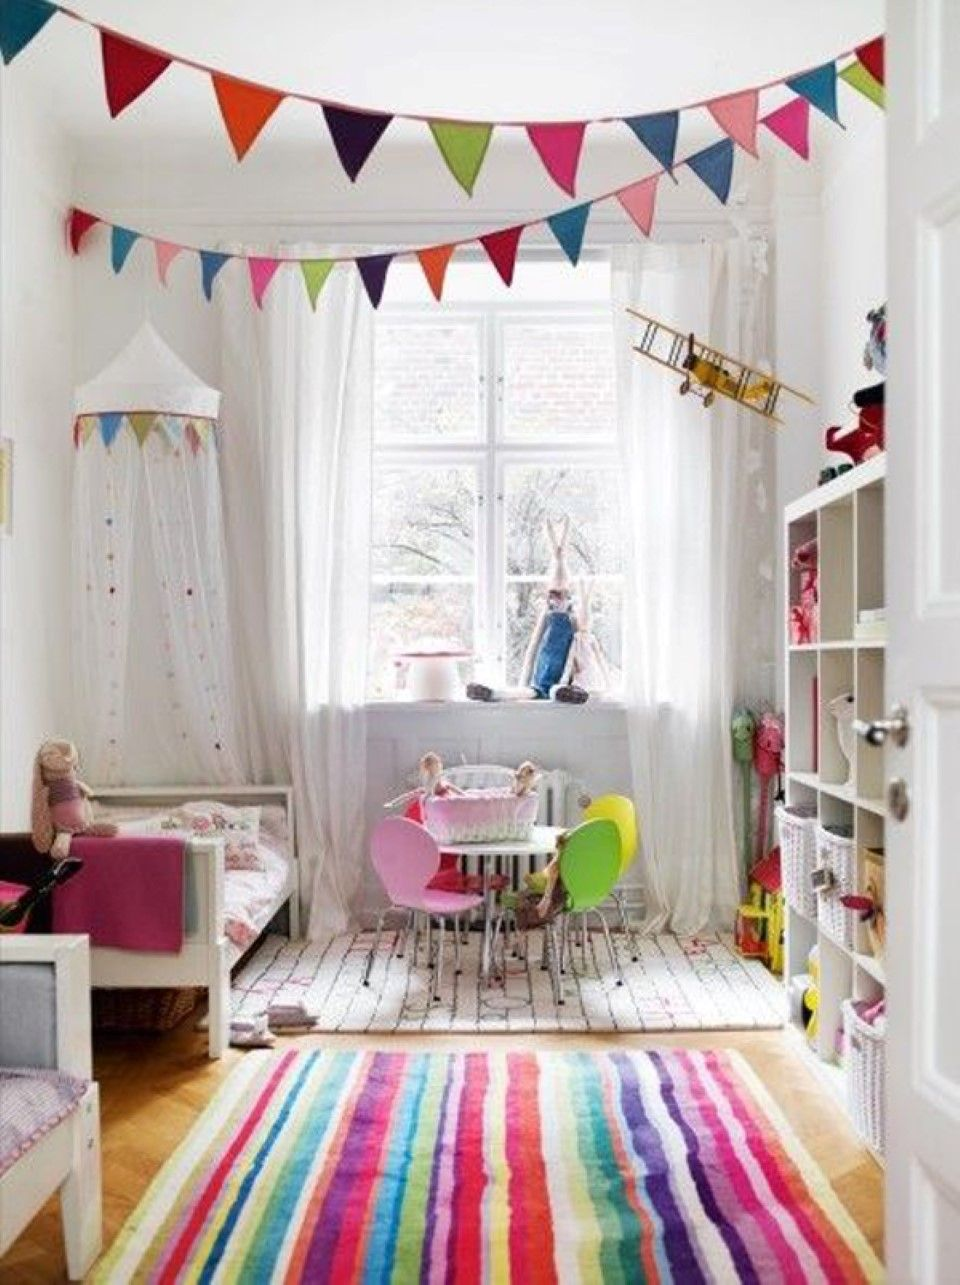 Colourful Rainbow Rug With White Kids Playroom Set Plus Flag Banner  Decorating Idea